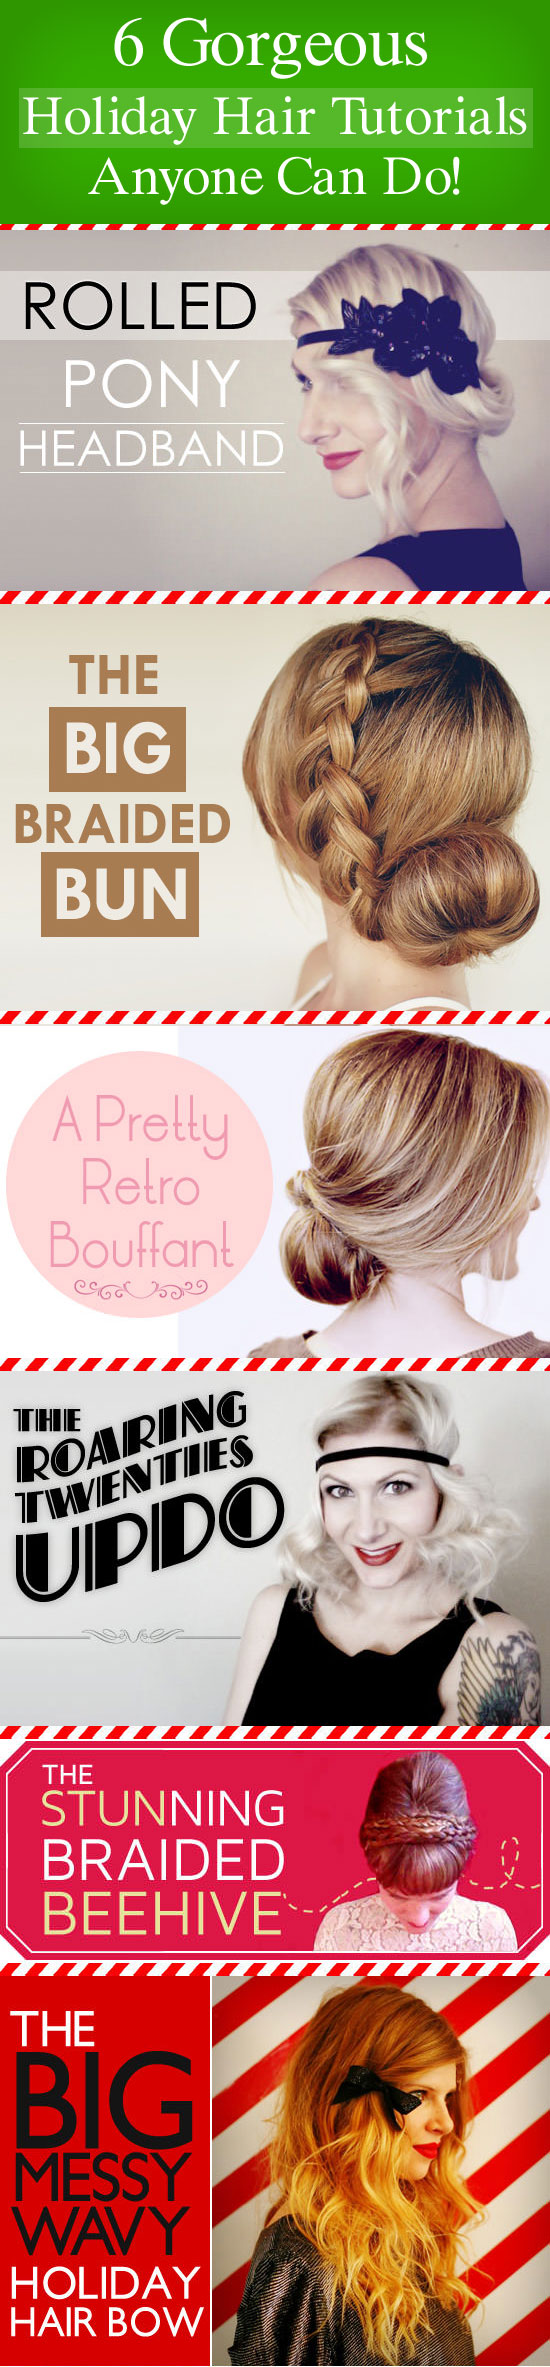 holiday hairstyle tutorials